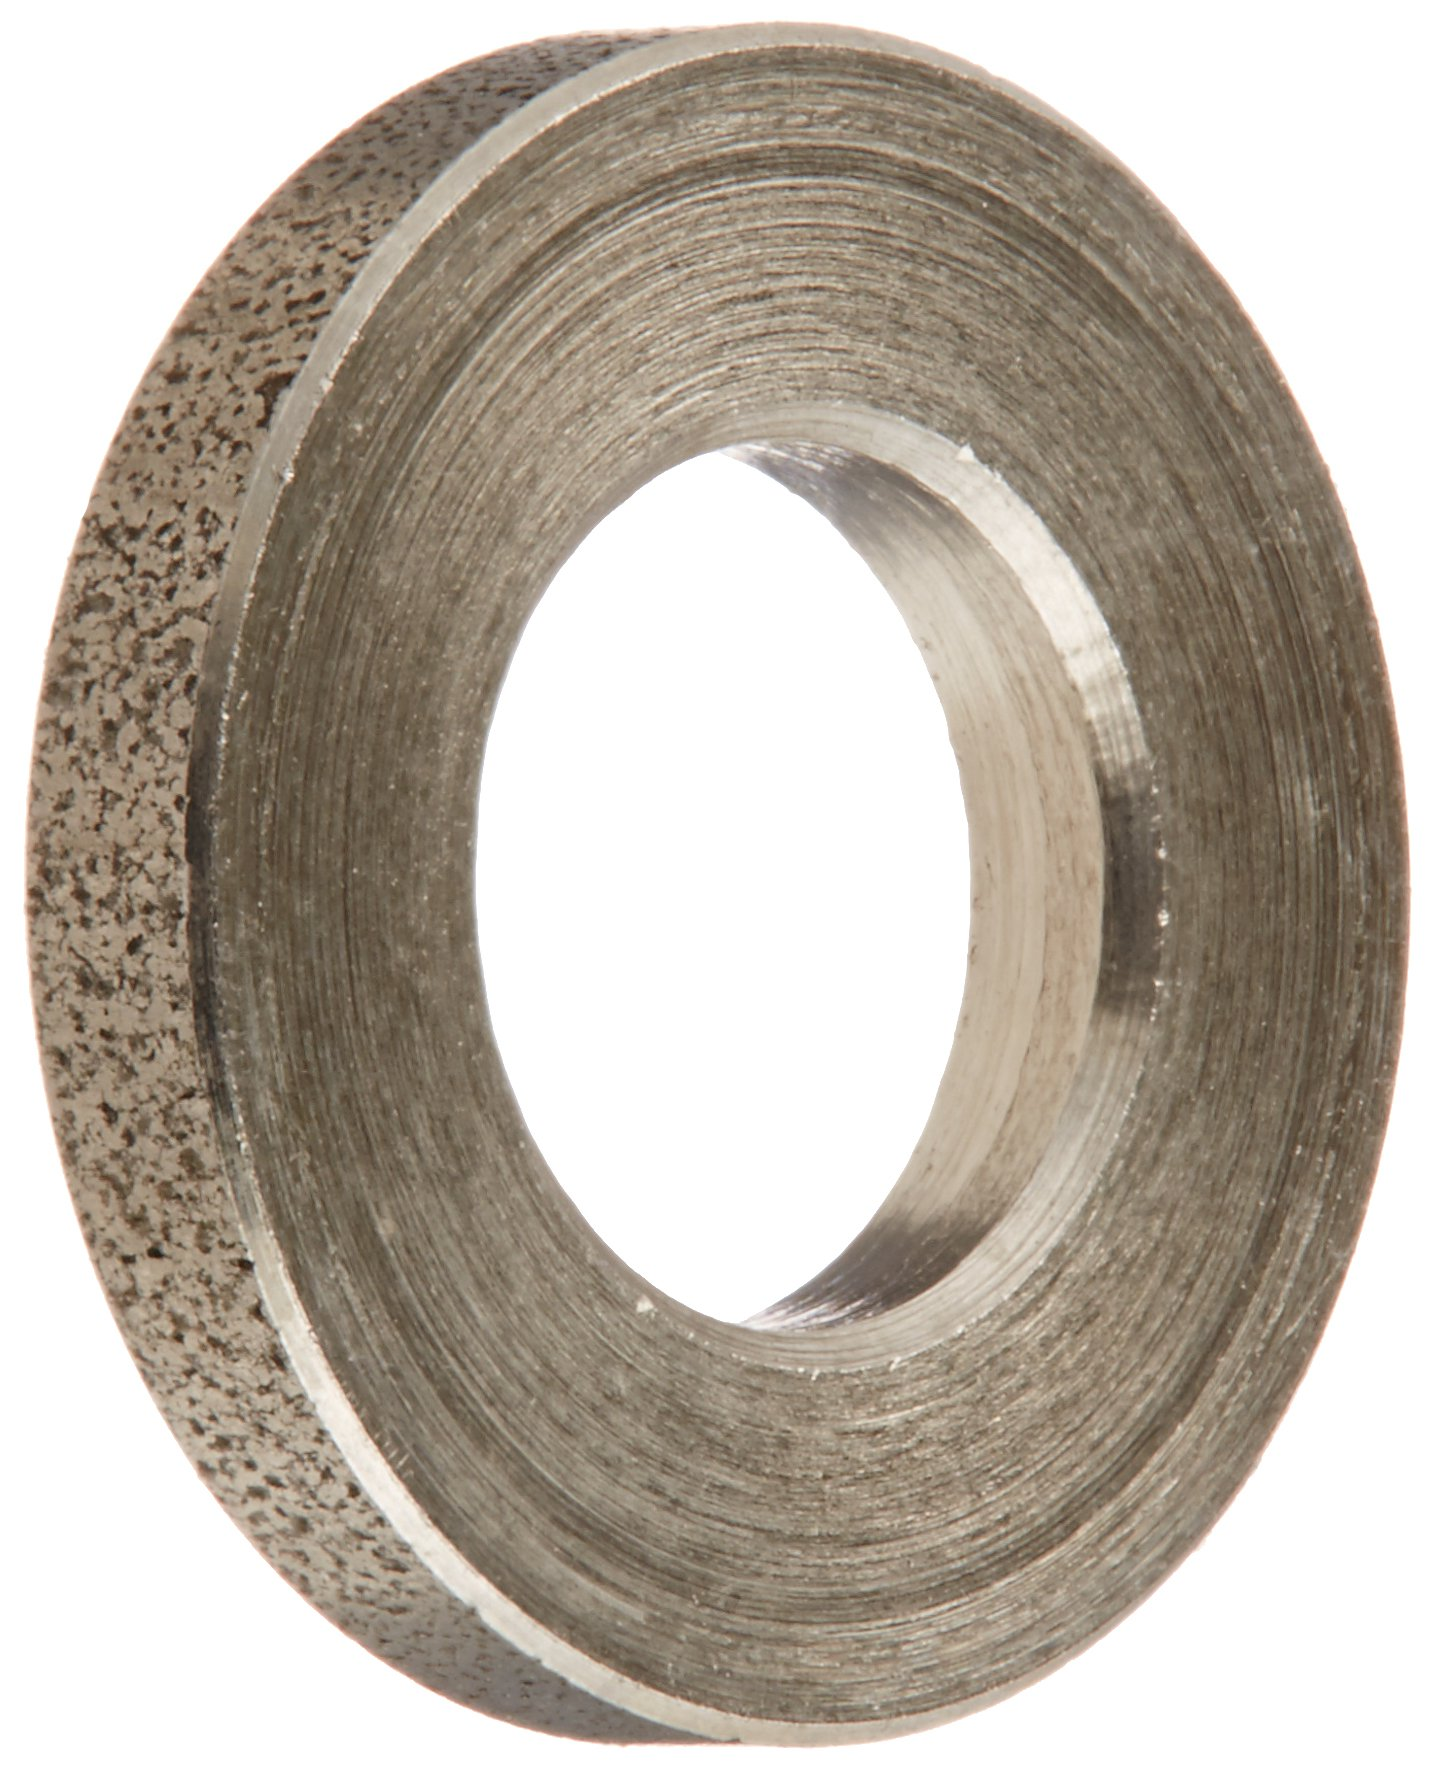 Morton 7254 Stainless Steel 300 Flat Washer, 1/4'' ID x 1/2'' OD, 5/64'' Thick (Pack of 10)